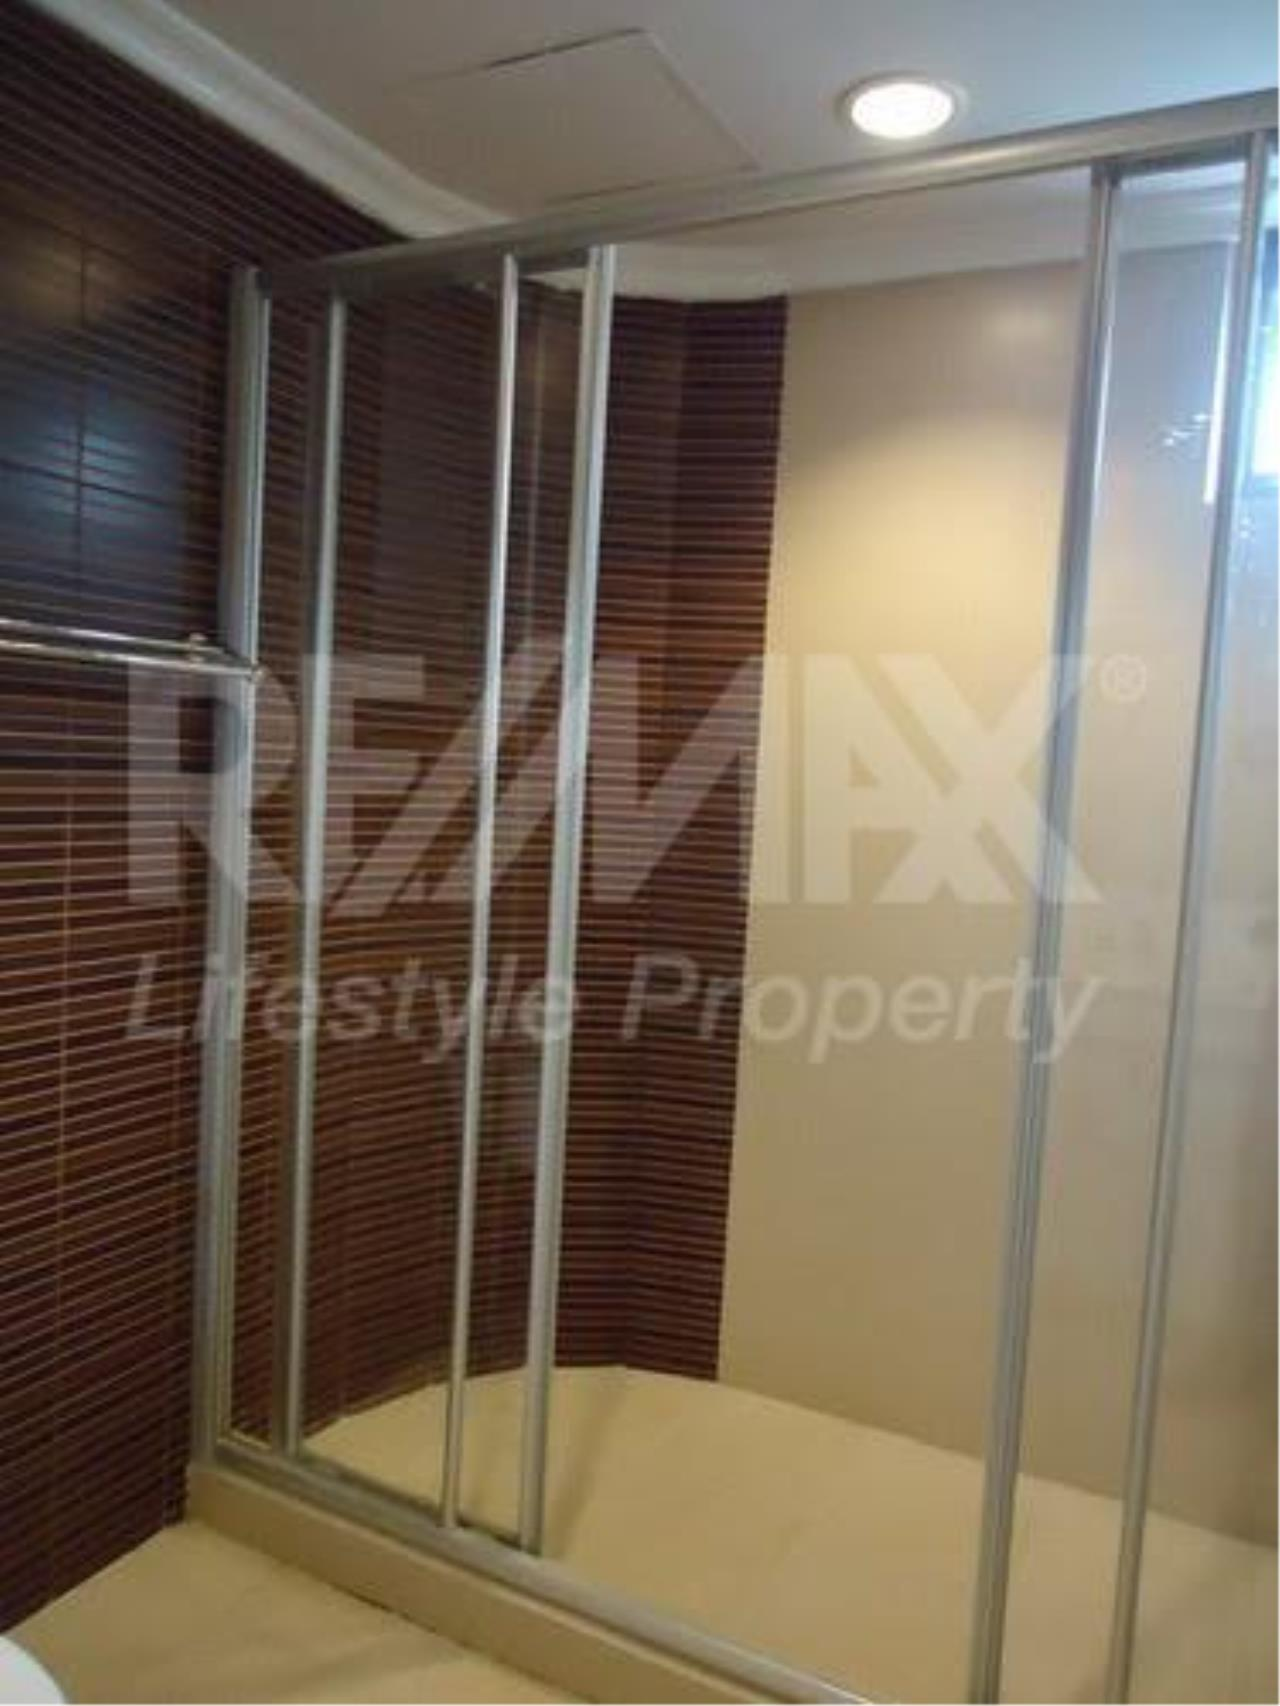 RE/MAX LifeStyle Property Agency's Charan Tower 4